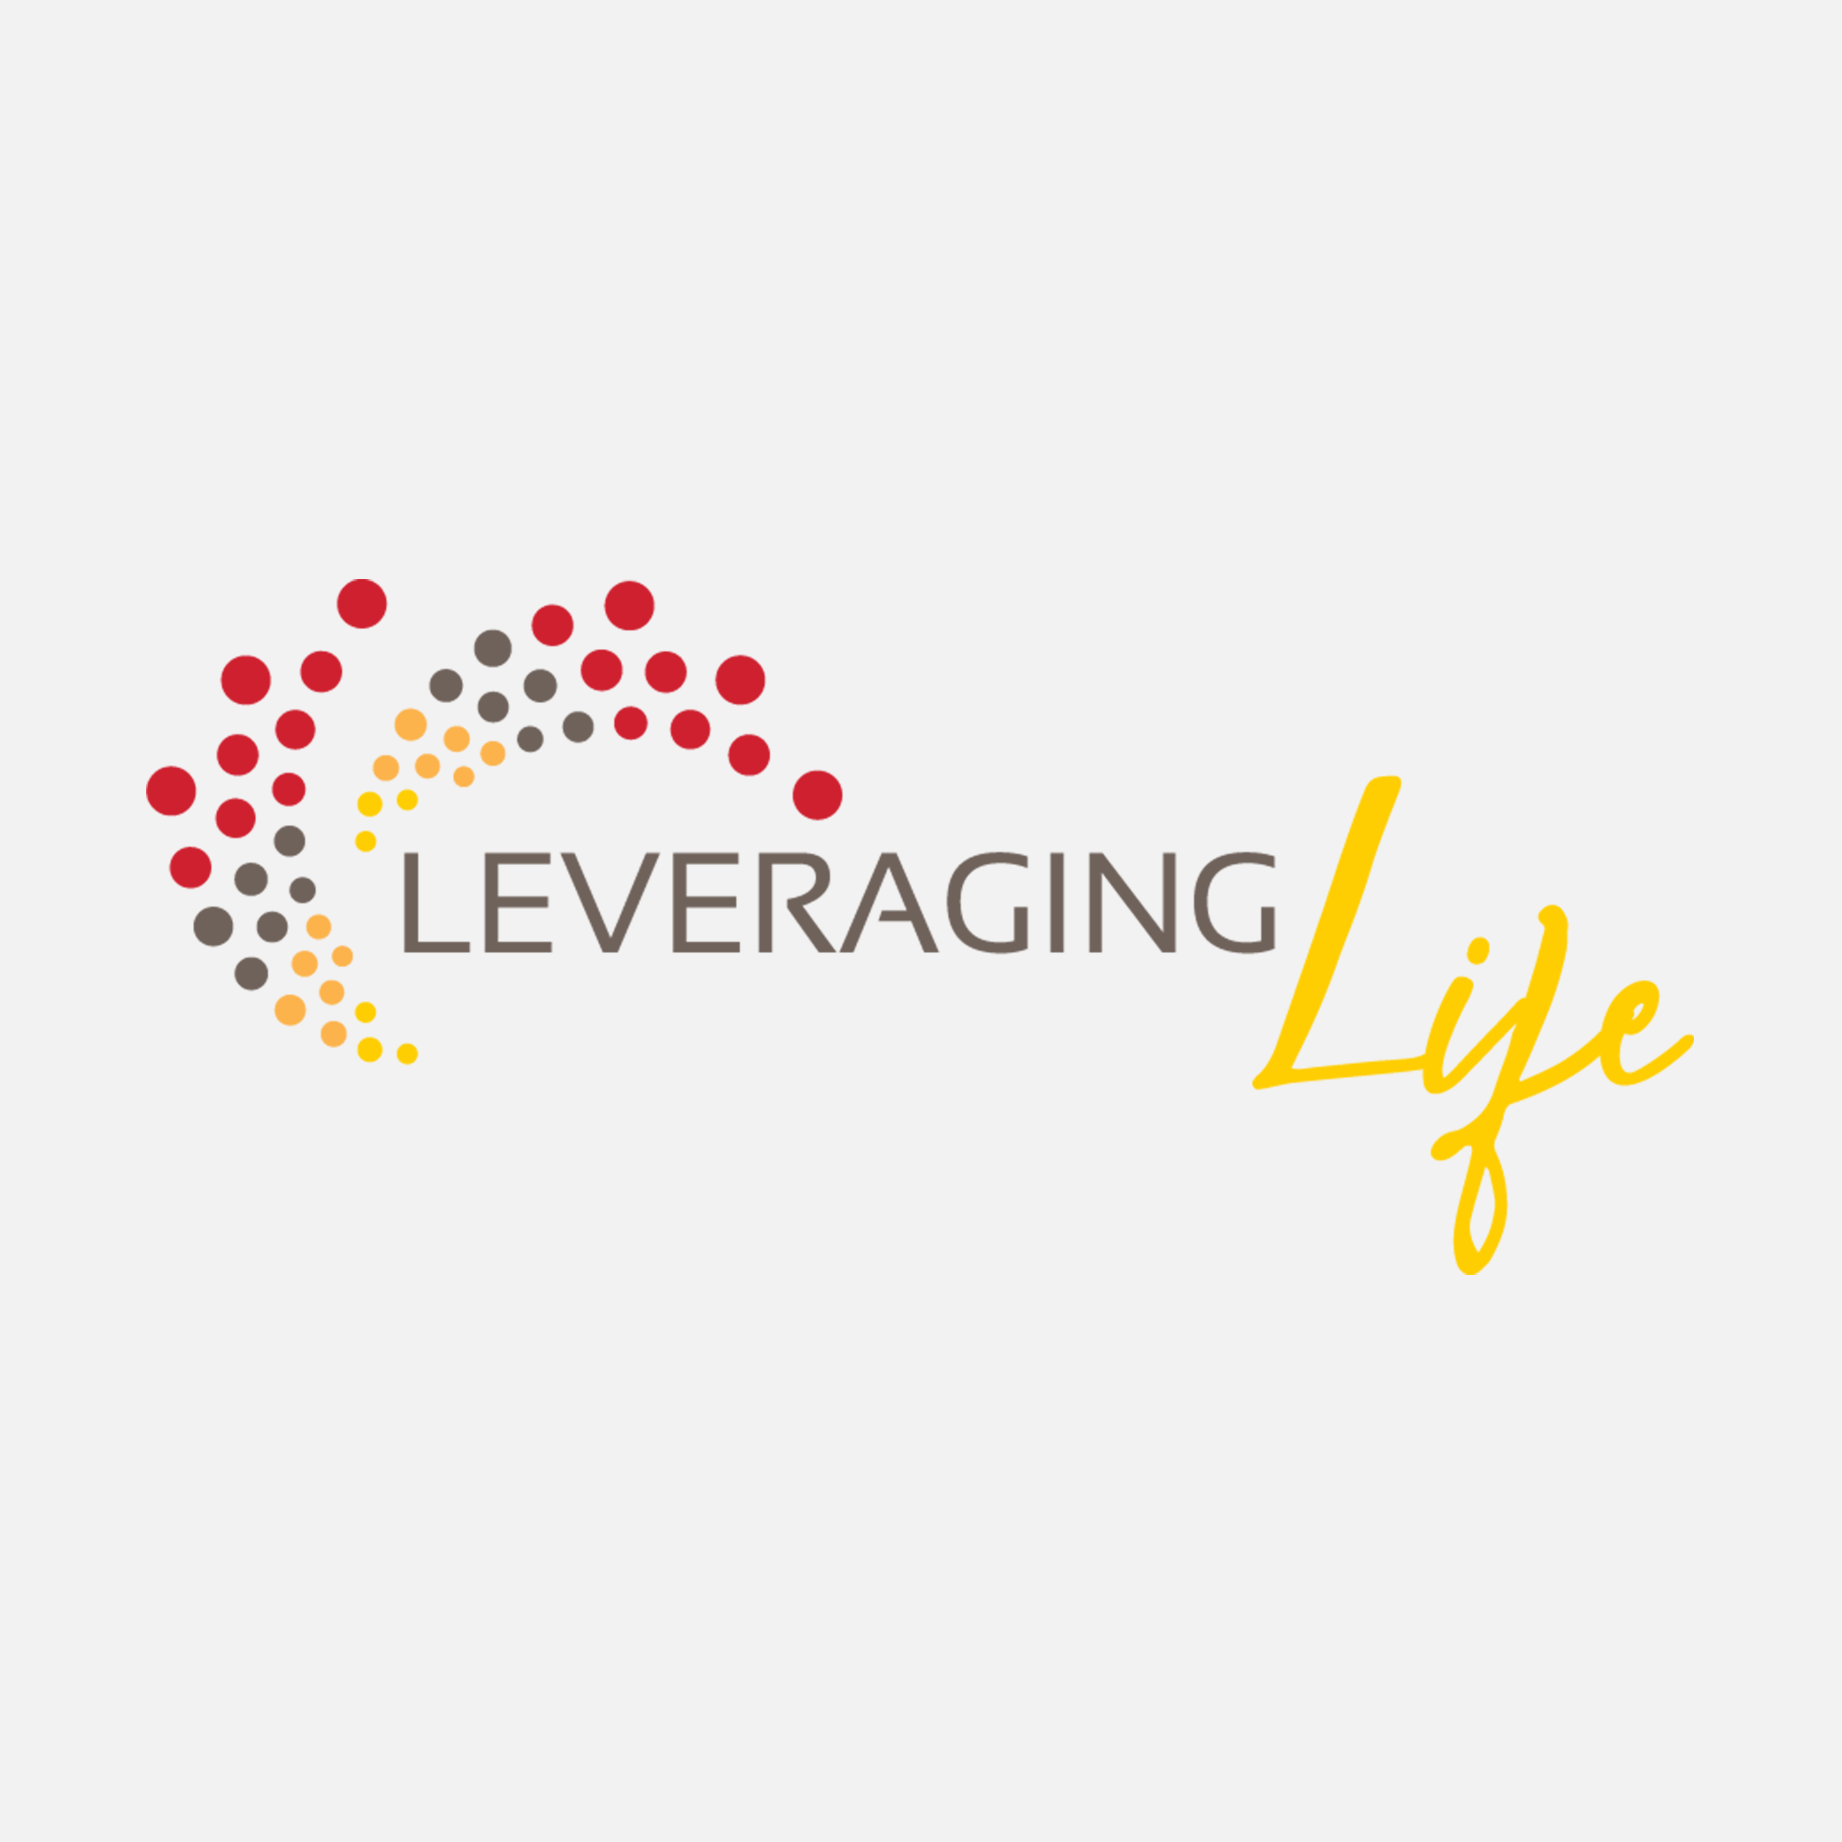 Leveraging Life - Hosts: Becky Henderson and Courtney SantanaLeveraging Life promotes the stories of people who have both overcome adversity and have been of incredible service to others — not despite the adversity but because of it. Though many people overcome great odds and difficulty, few intentionally channel their own success to serve others.These are the stories of those who have leveraged their own experiences to bring greater value to humanity and to the world.Click HERE for the show's website